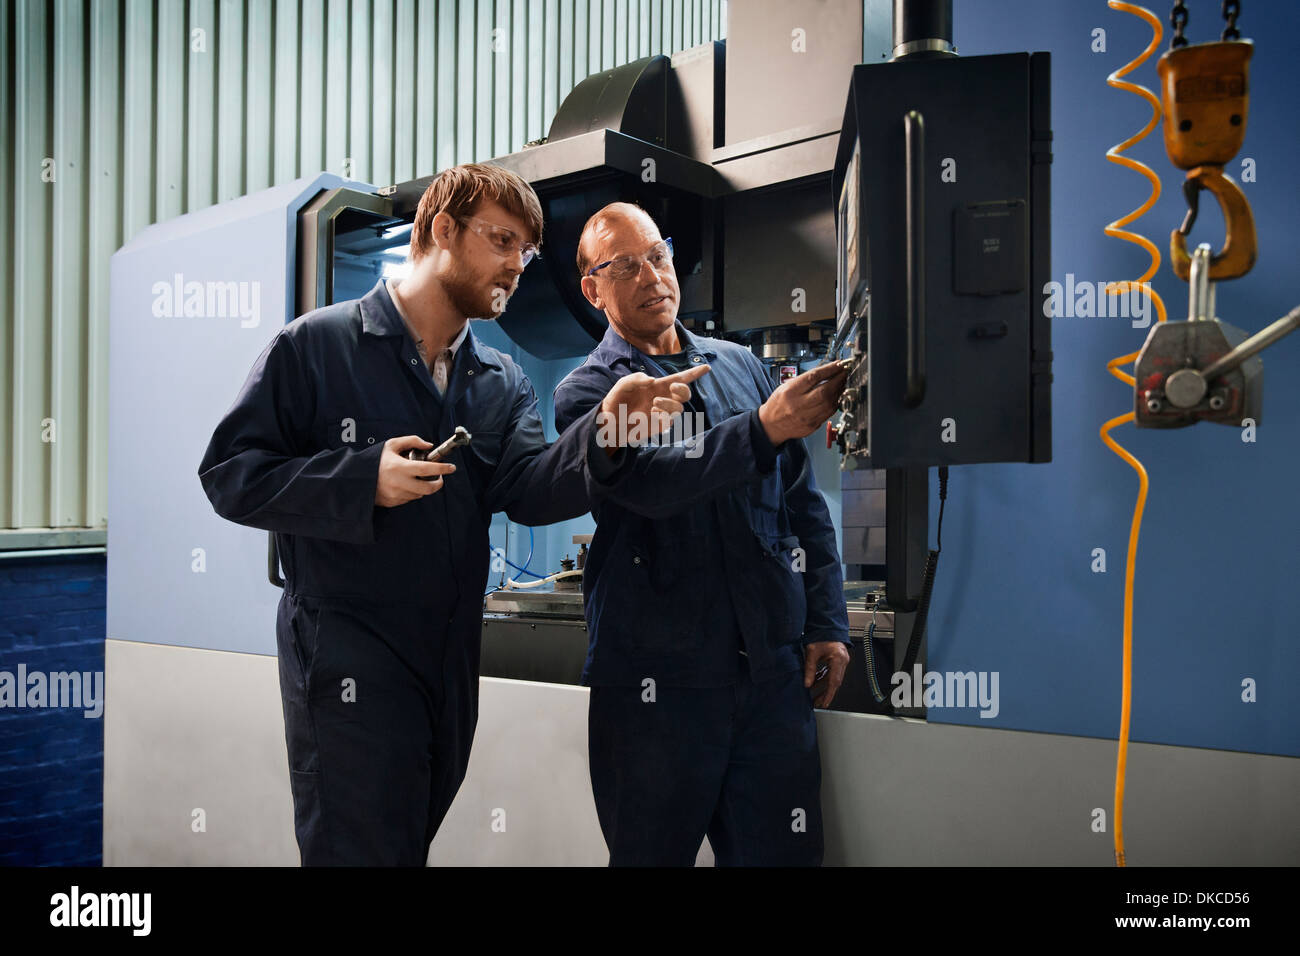 An experienced worker explains the workings of a CNC machine to an apprentice - Stock Image